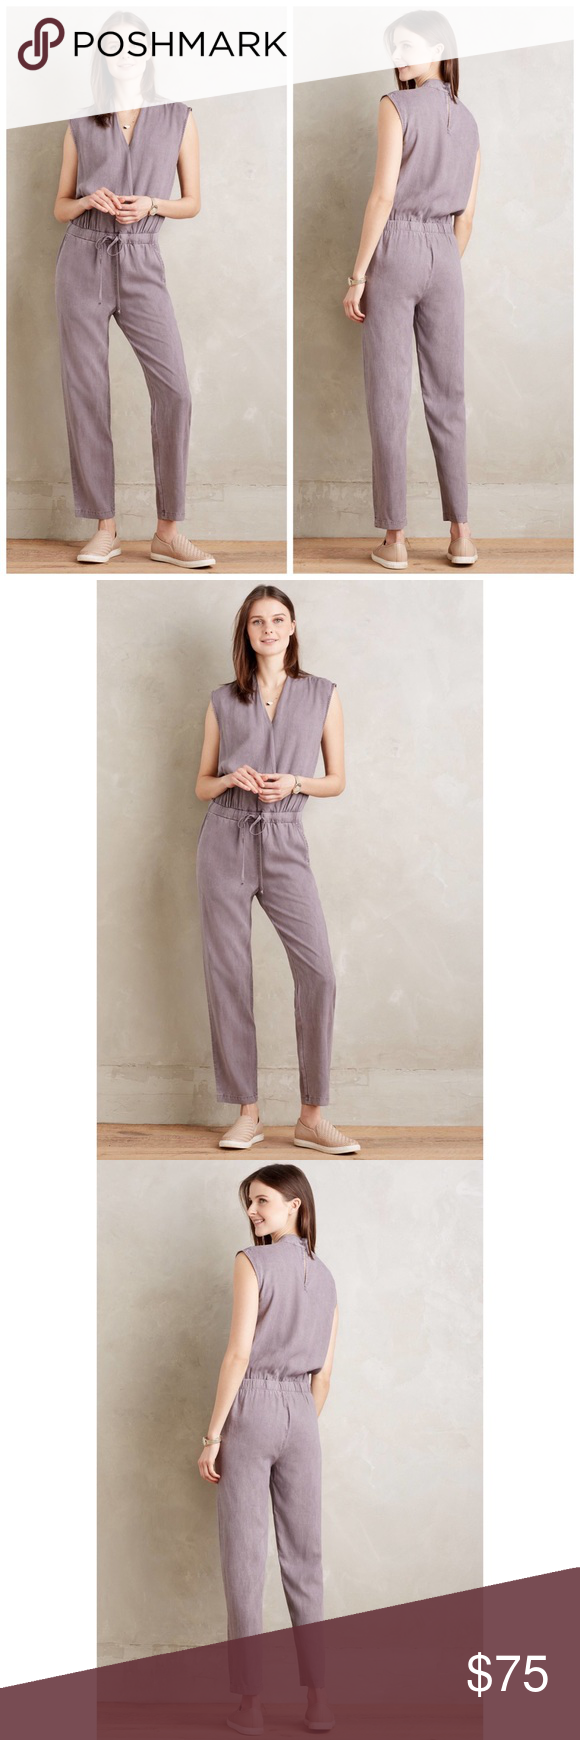 b64a69e83bf Cloth and Stone Mignon Jumpsuit Anthropologie Cloth and Stone Mignon Pants  Jumpsuit Anthropologie  160 retail brand new never worn perfect condition  Except ...